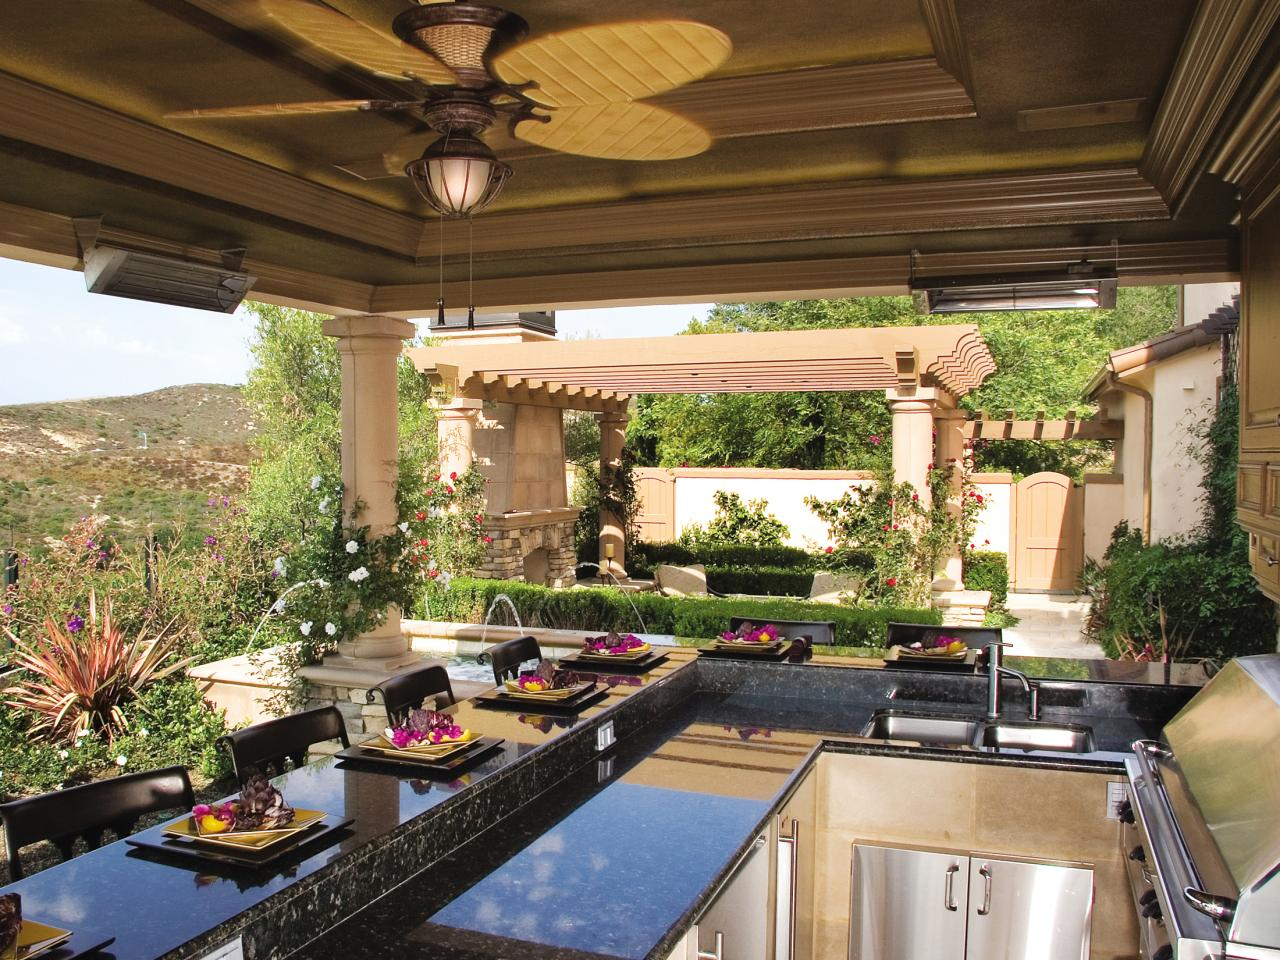 Mediterranean Porch Design With Stylish Kitchen